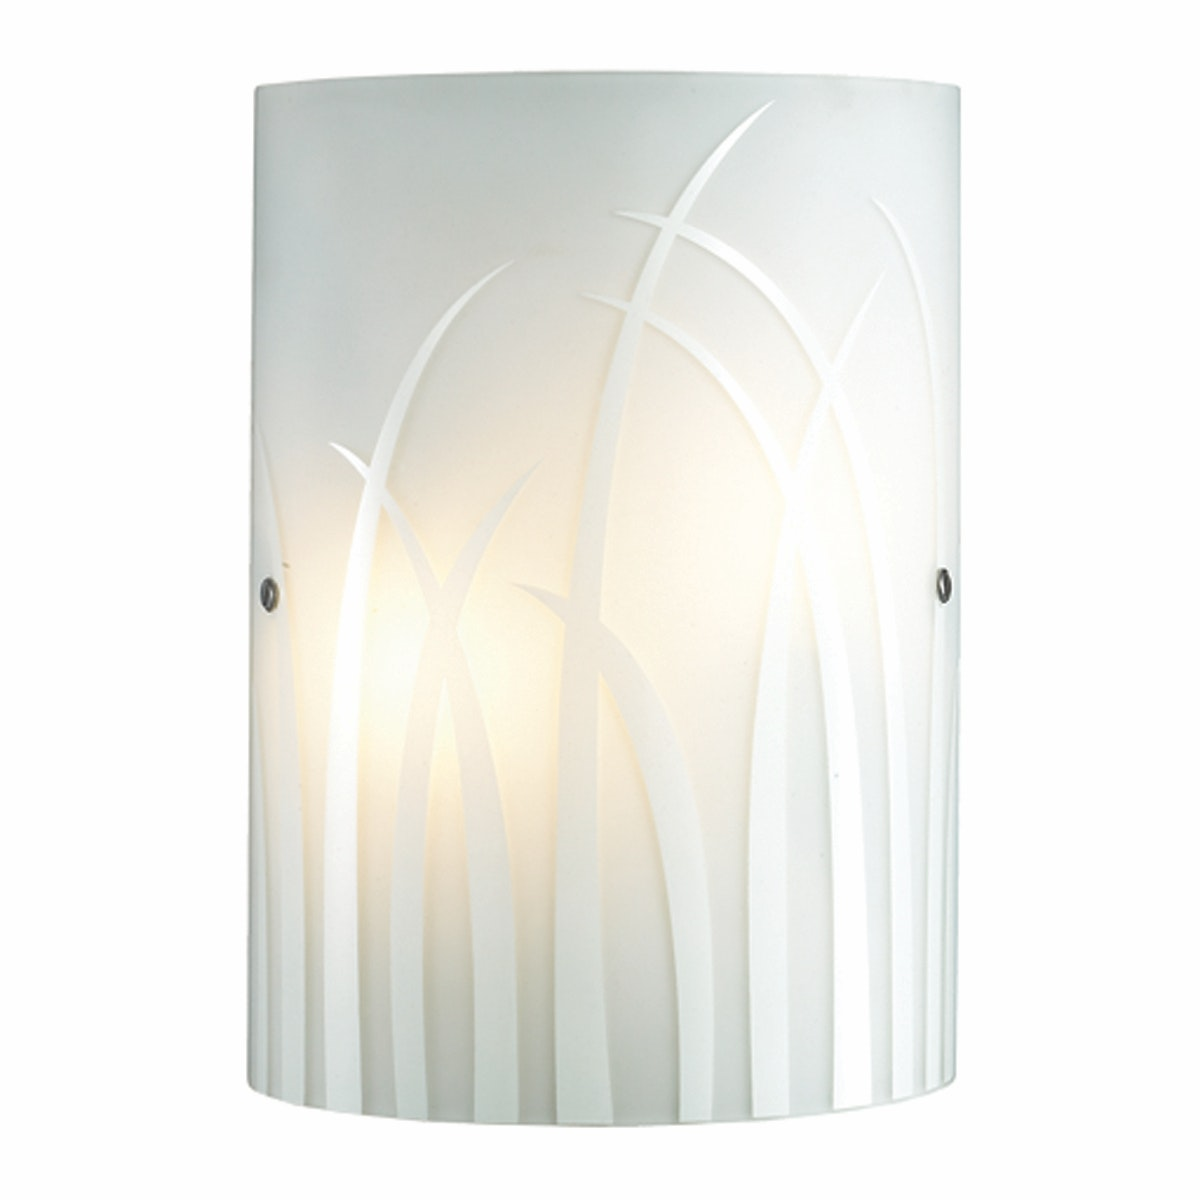 3+Projects Lampu Dinding / Wall Lamp White Glass 3+DL-WL1206-GA-AH